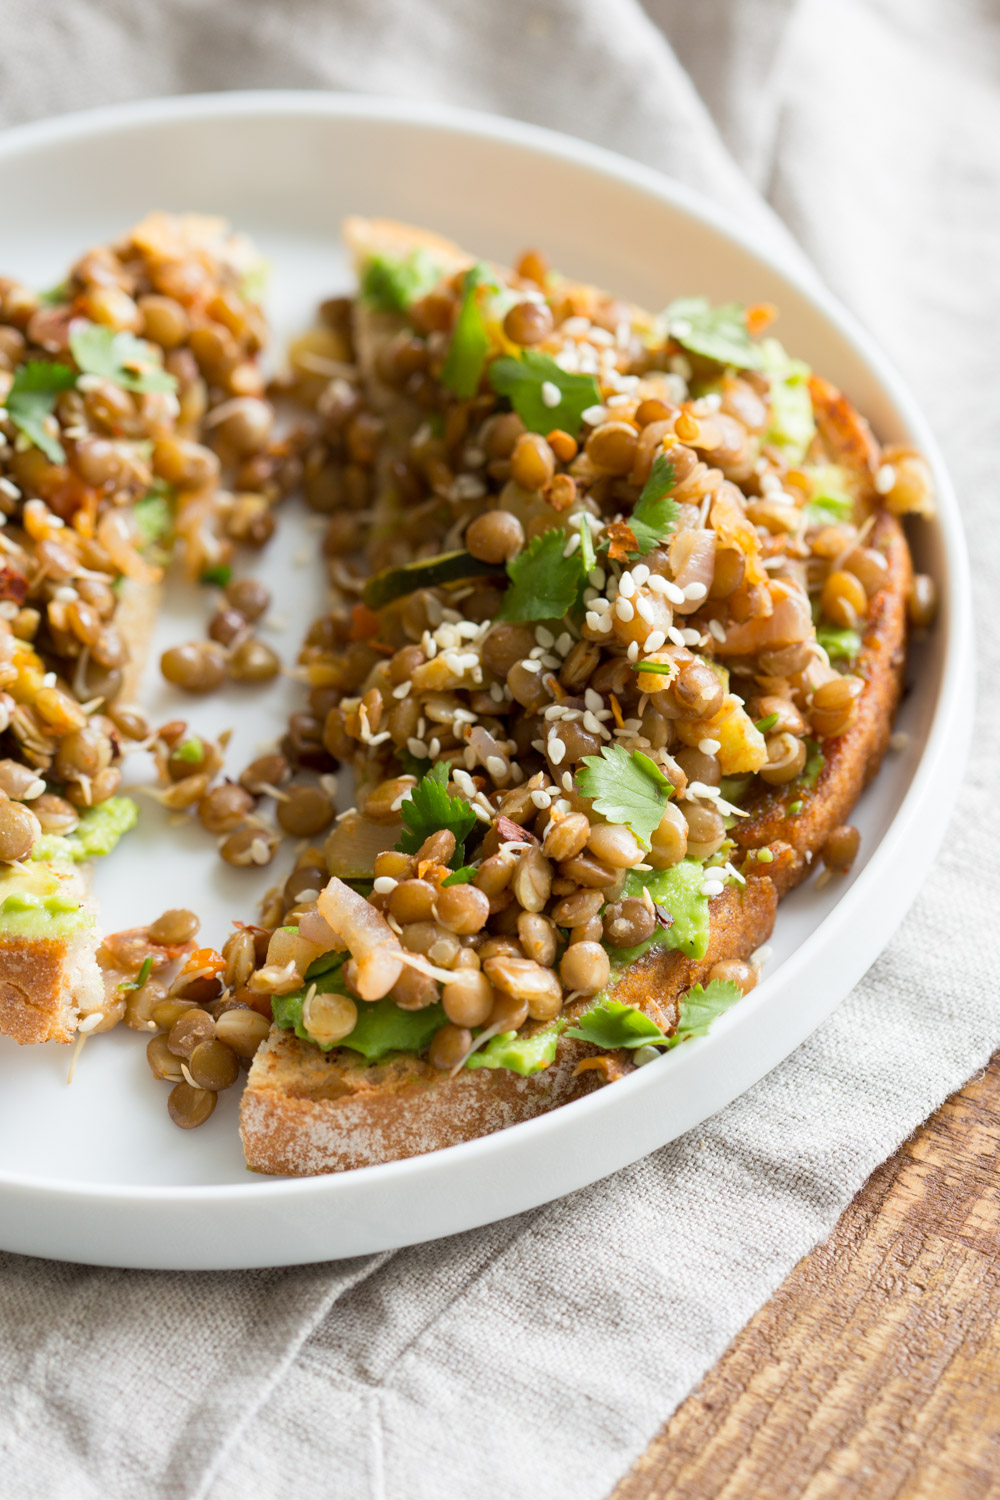 Ginger Coriander Sprouted Lentils Avocado Toast from Vegan Richa